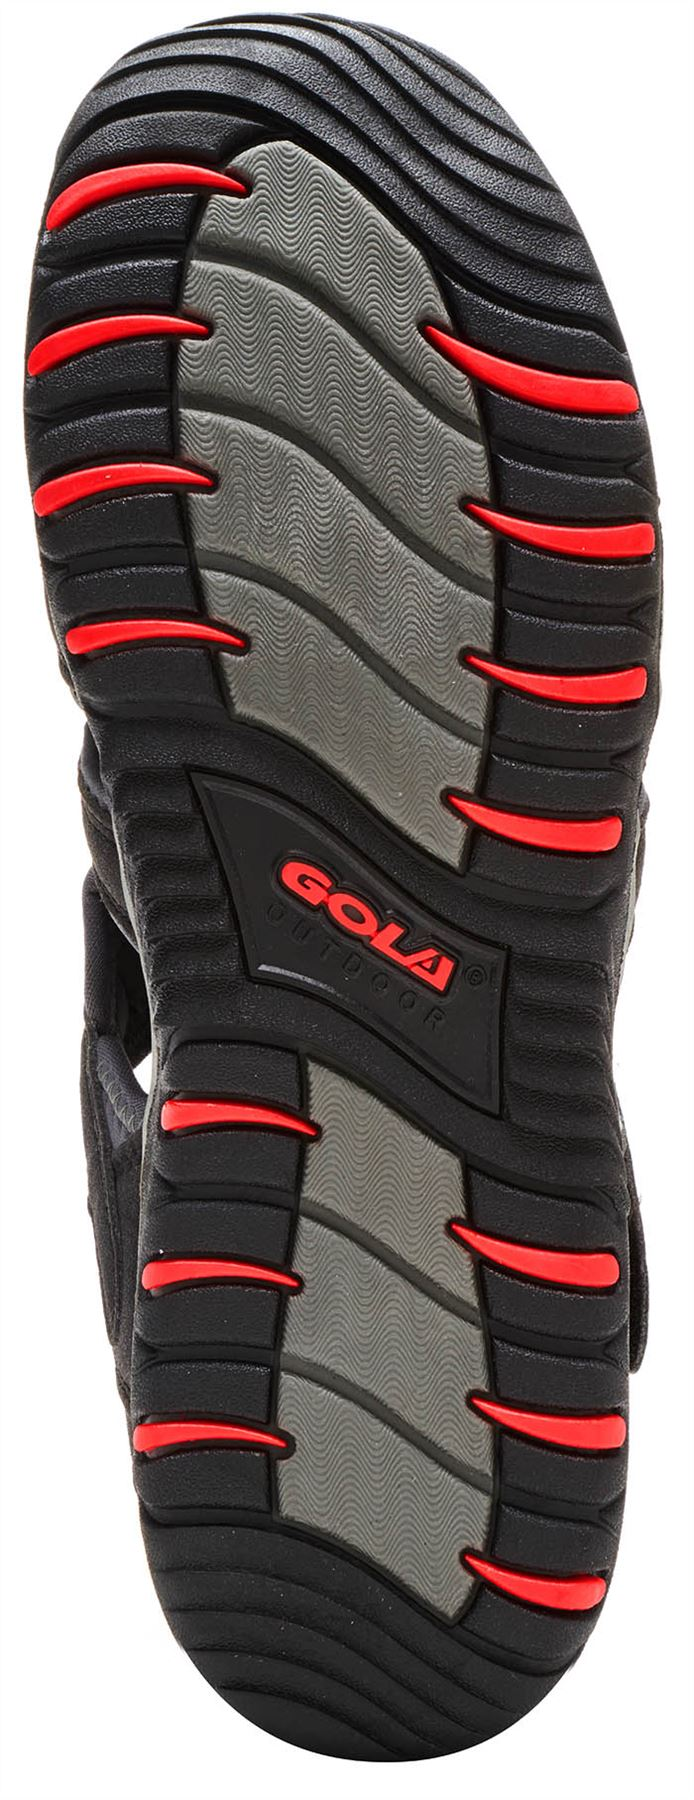 Gola Shingle 3 Outdoor Sandals in Brown /& Taupe AMP209FB /& AMP209TB